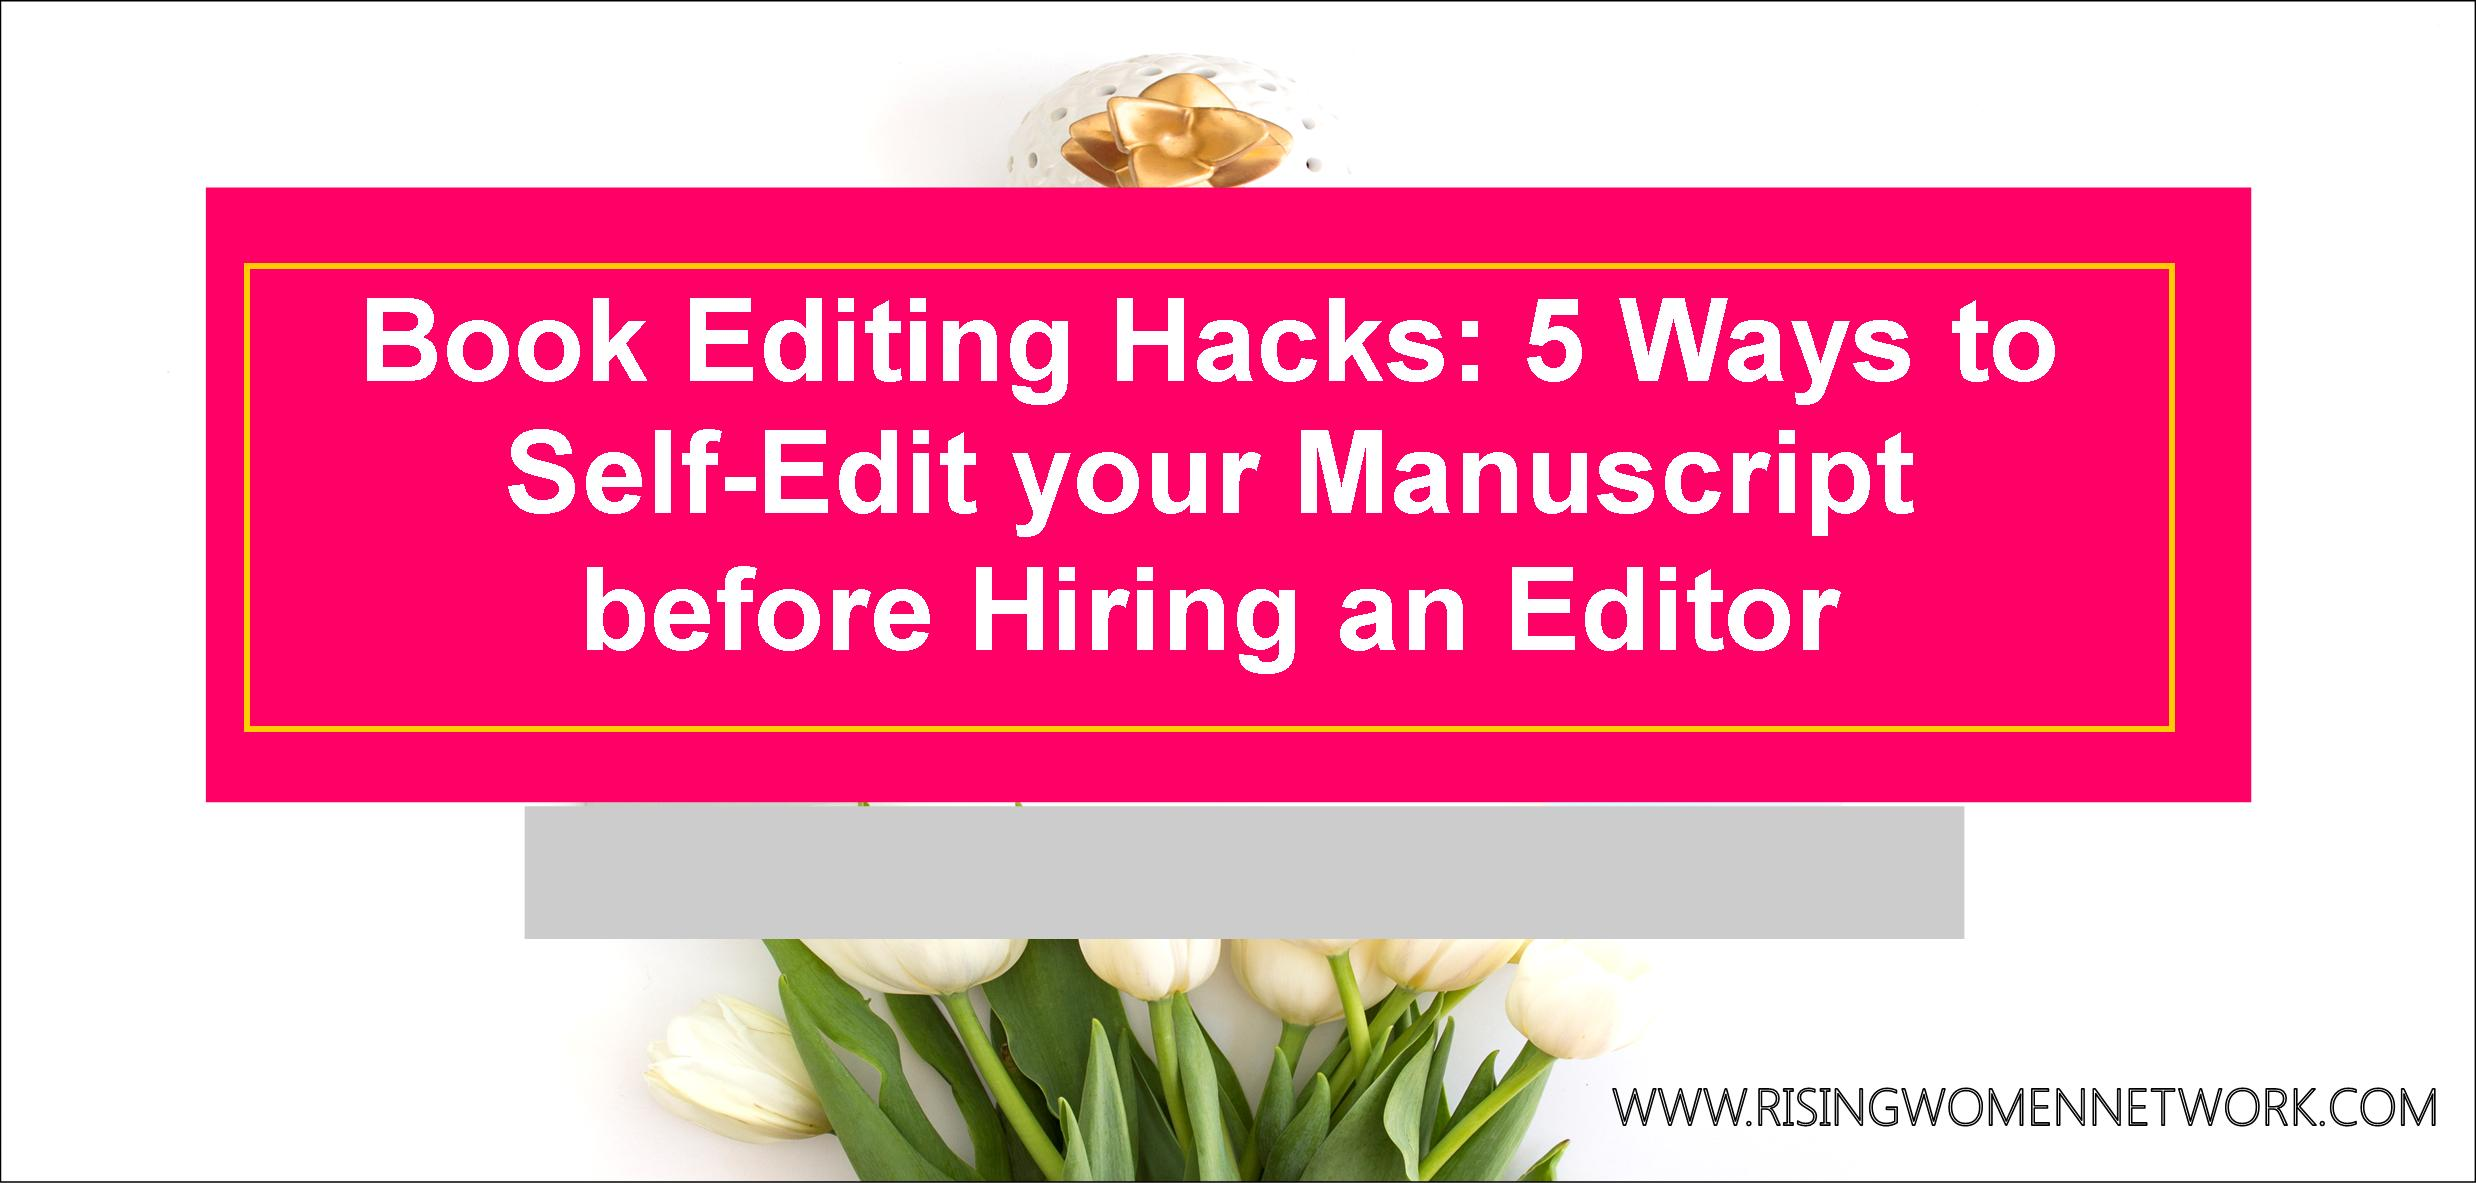 Easy book editing. Numerous free resources can help you improve your manuscript, and get rid of those pesky errors before you hand it over to a professional